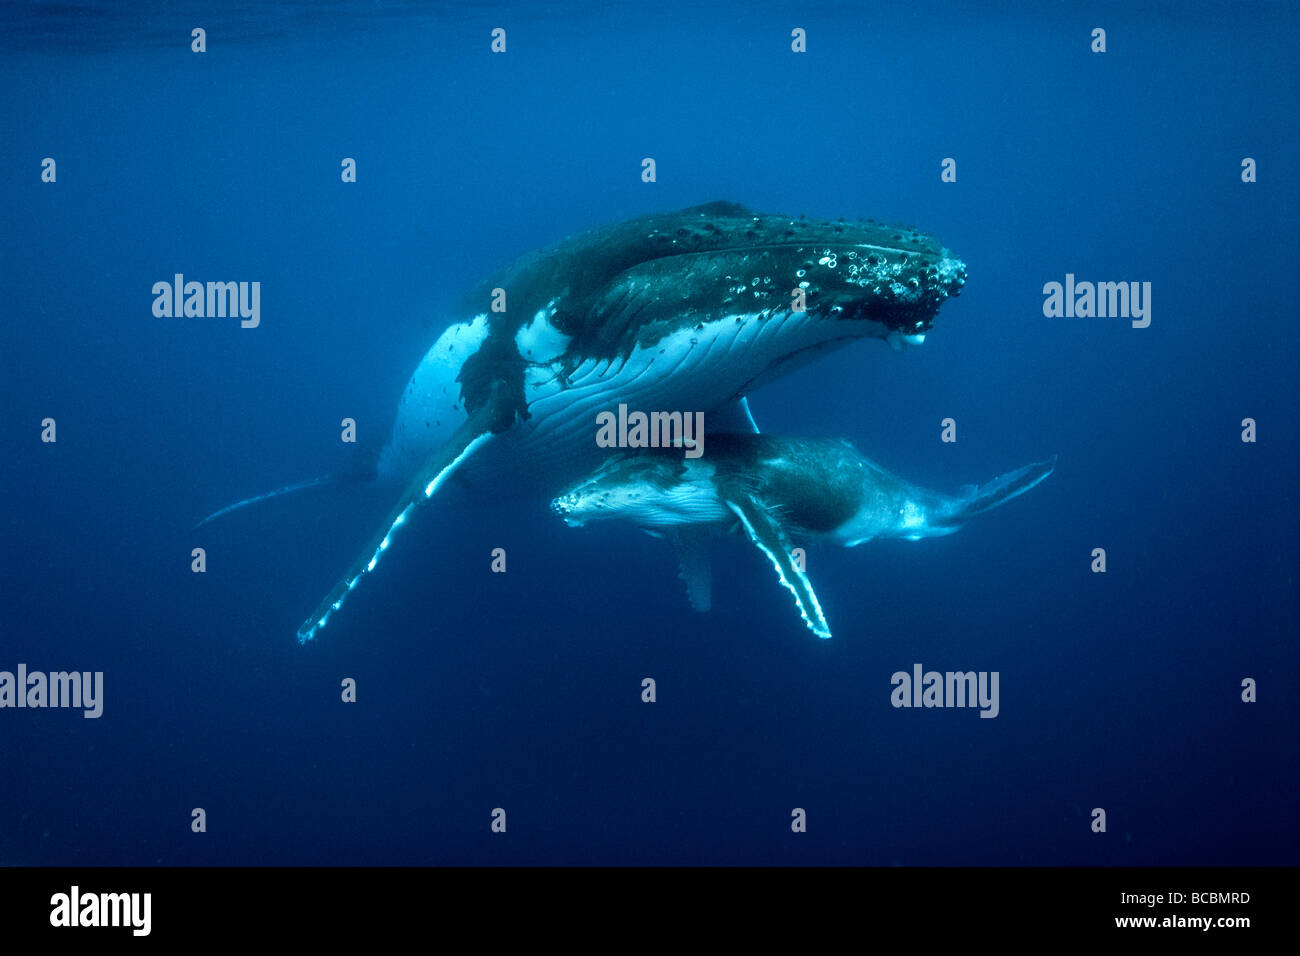 Humpback whales - Stock Image